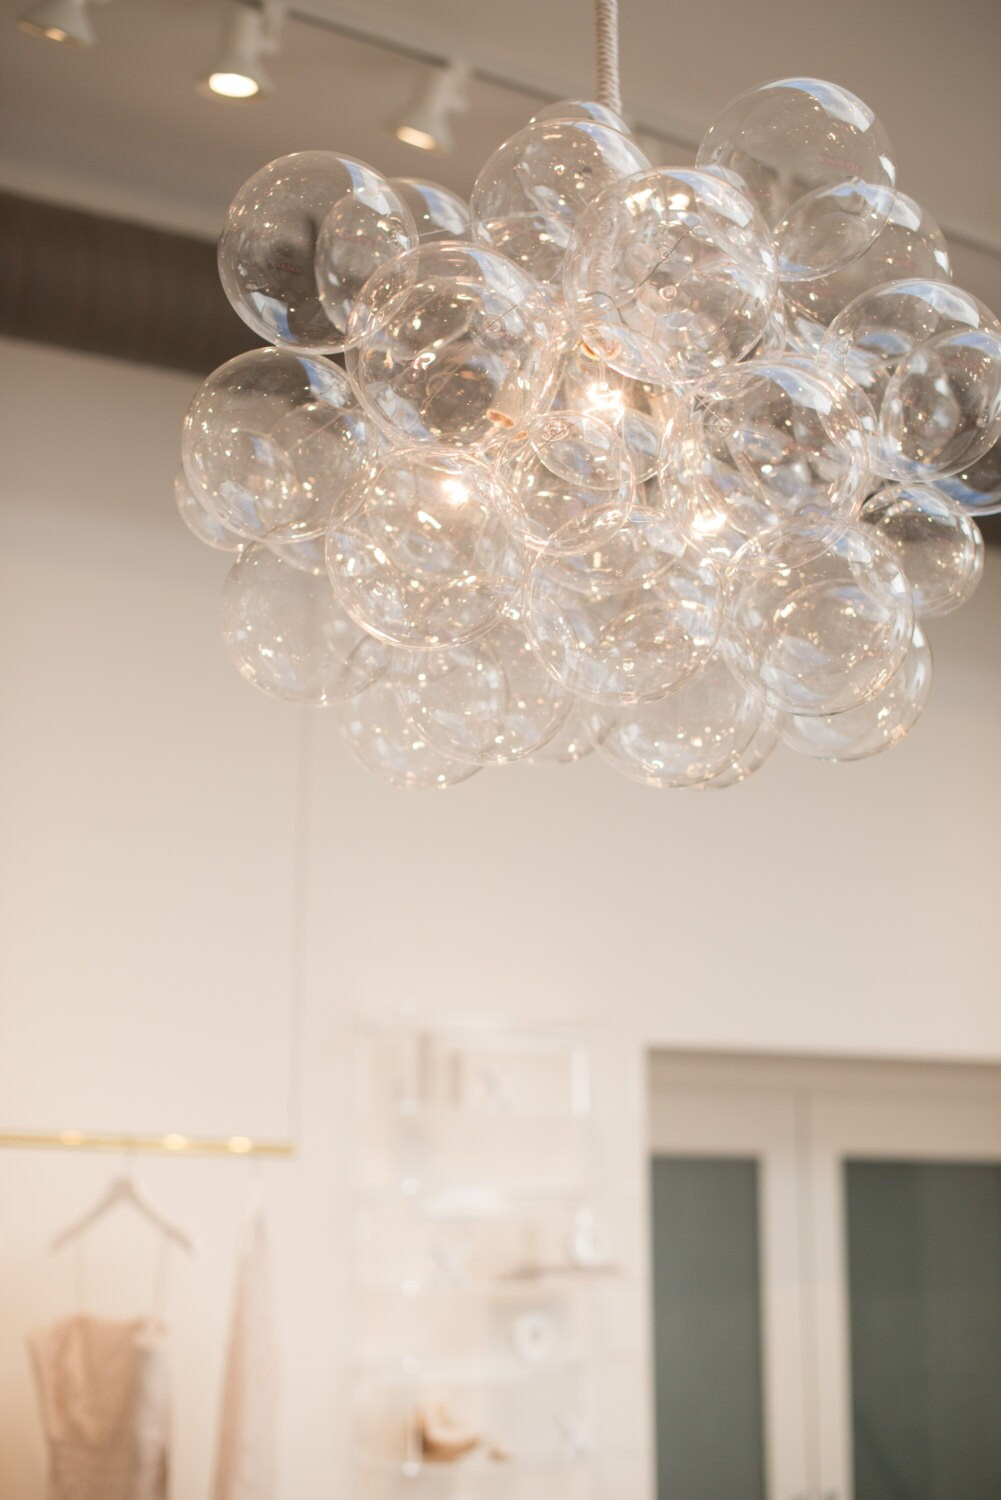 The 45 bubble chandelier bubble light dining room zoom arubaitofo Image collections